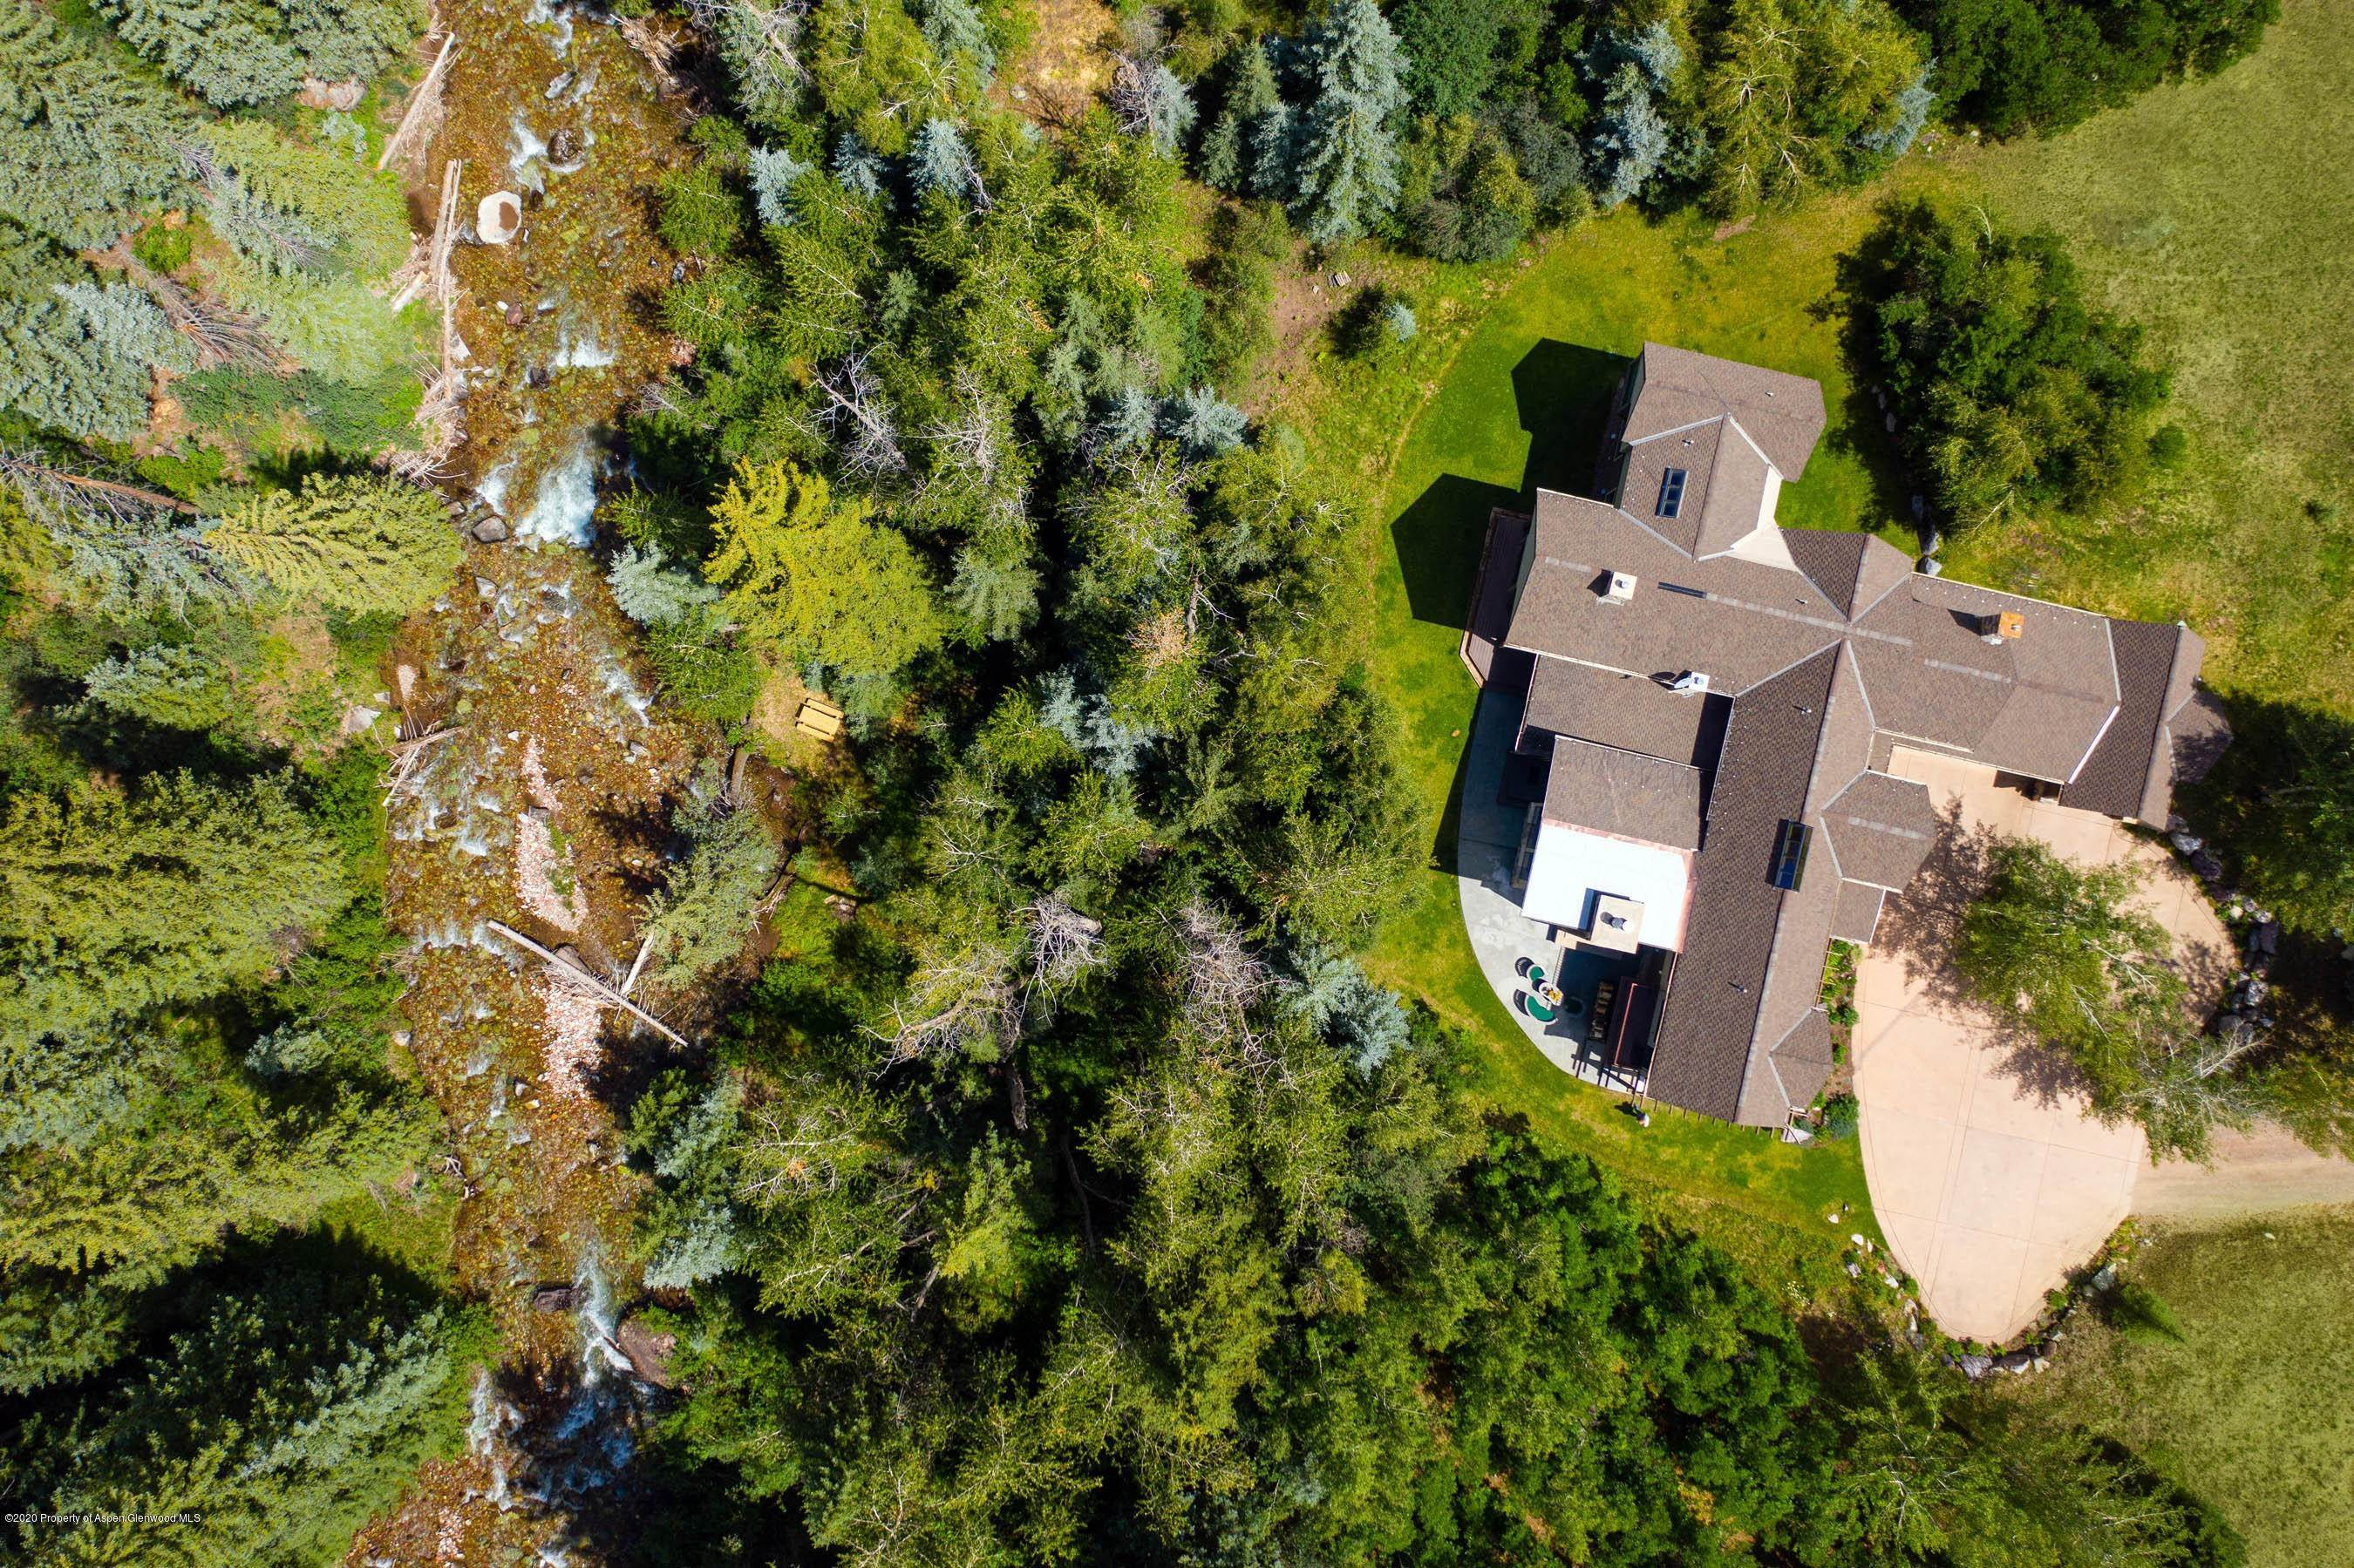 47. Single Family Home vì Bán tại 307 Whisperwind Way Snowmass, Colorado,81654 Hoa Kỳ